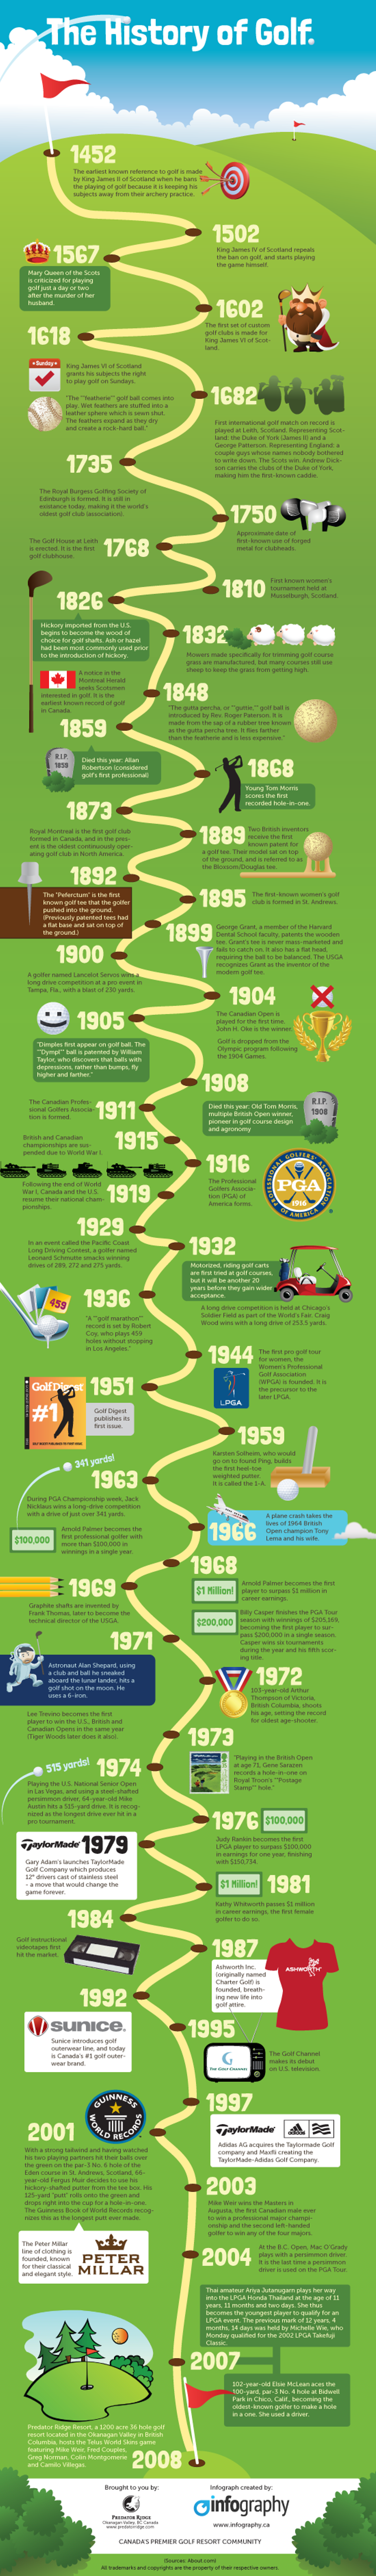 The origin and history of golf